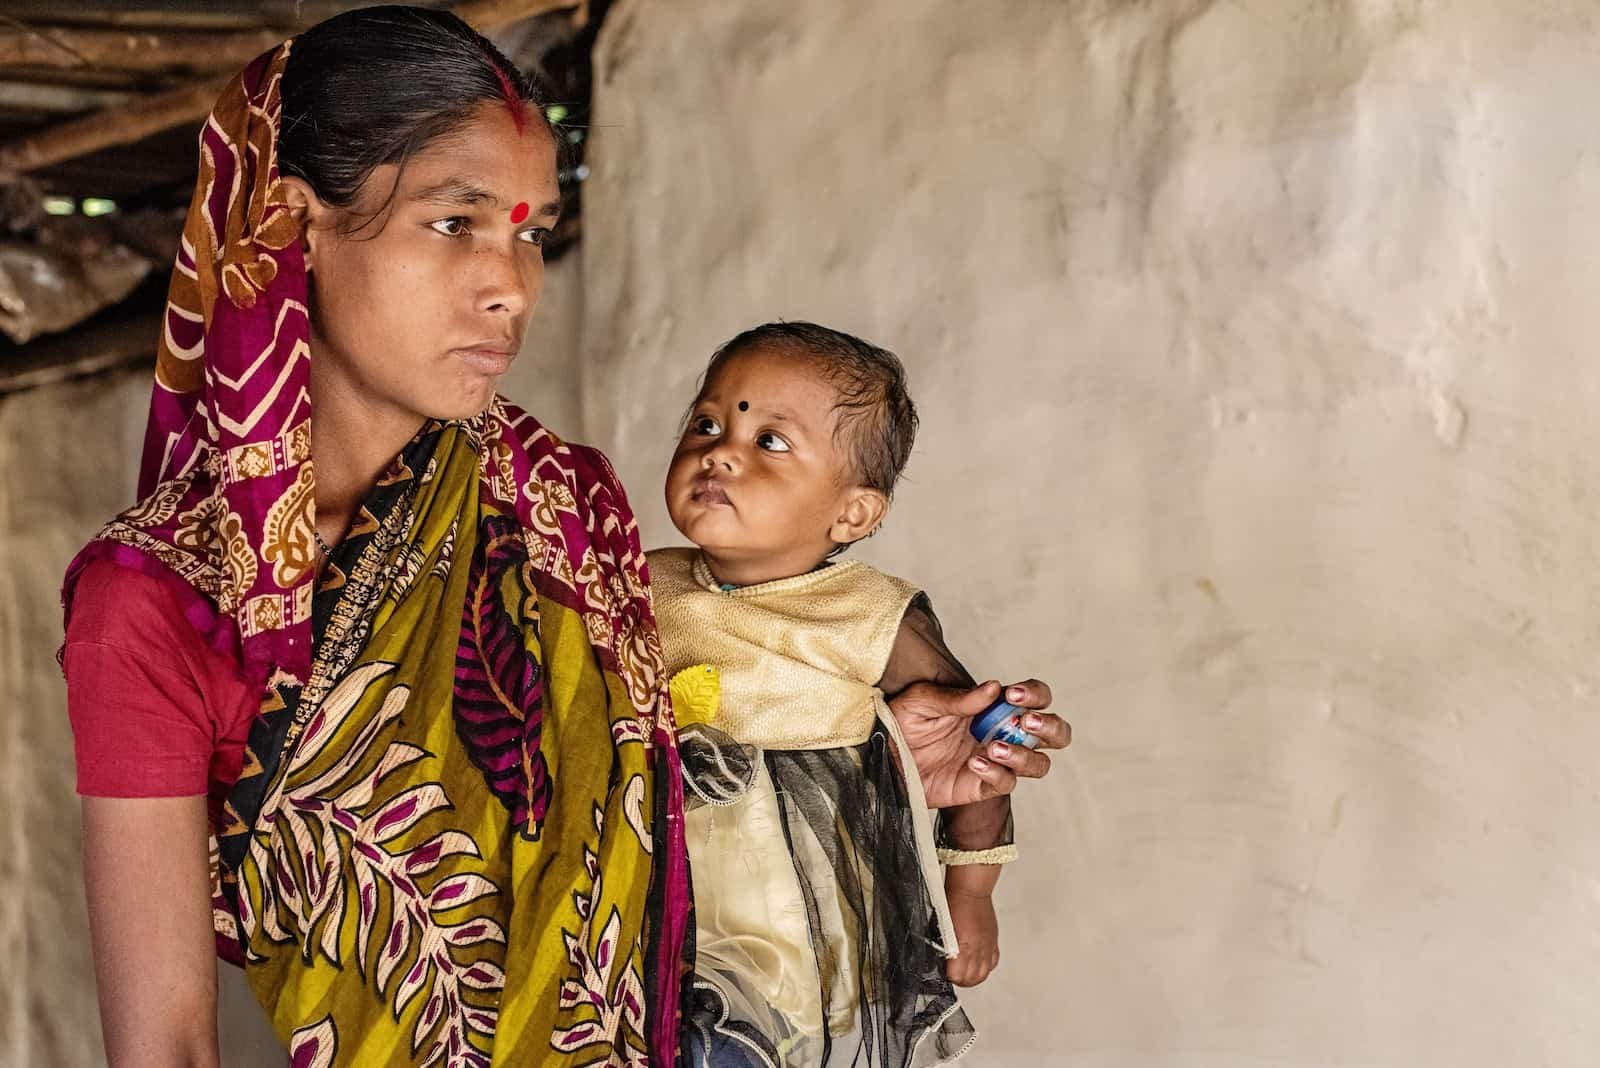 A woman in a colorful sari with a red bindi on her forehead holds a baby girl, who is looking at her. Report: Hunger Is on the Rise Around the World